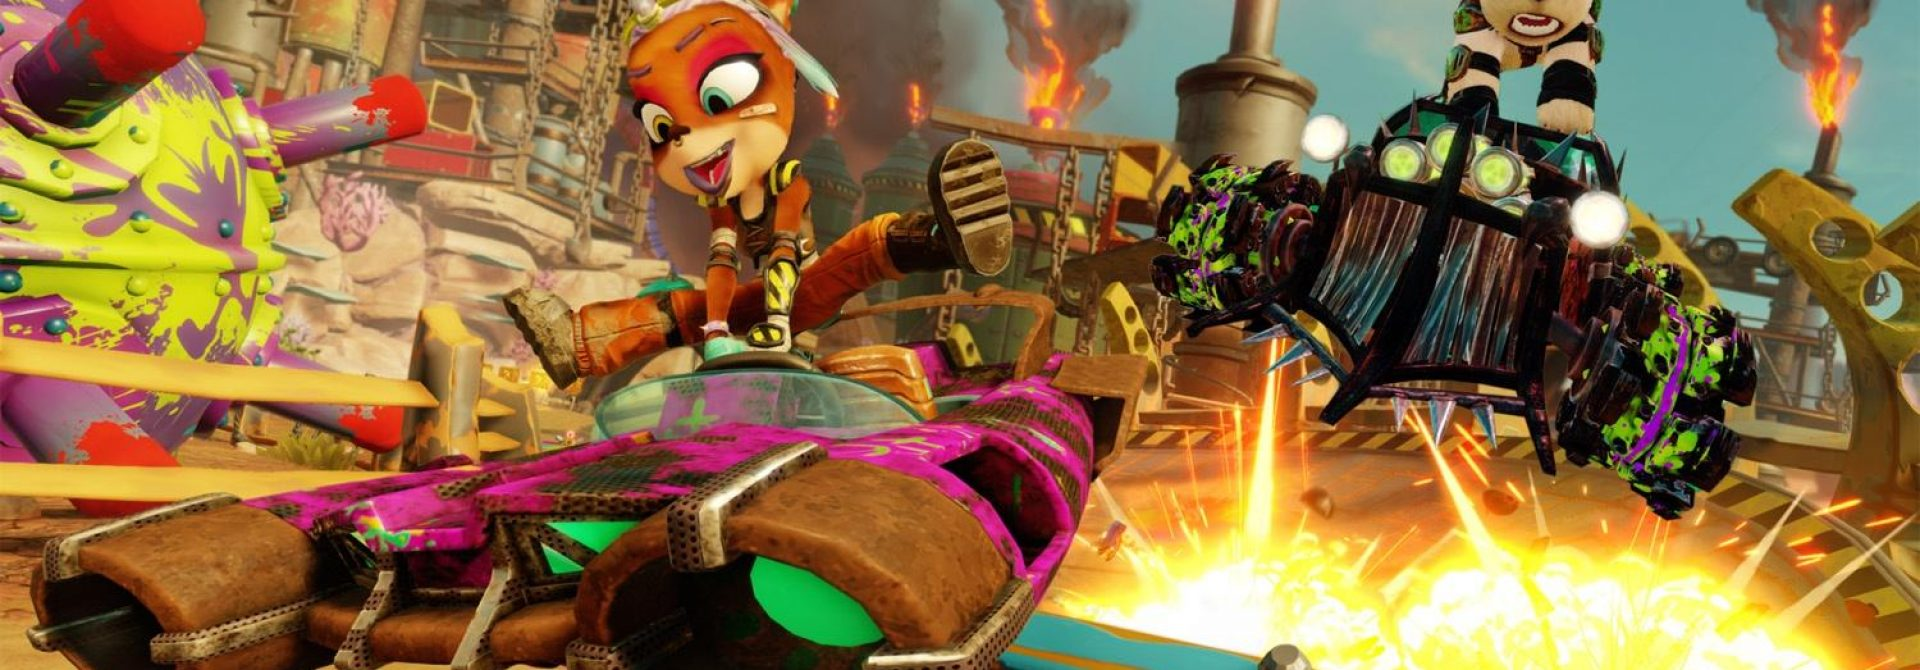 Rustland Grand Prix Kicks Off In Crash Team Racing Nitro-Fueled